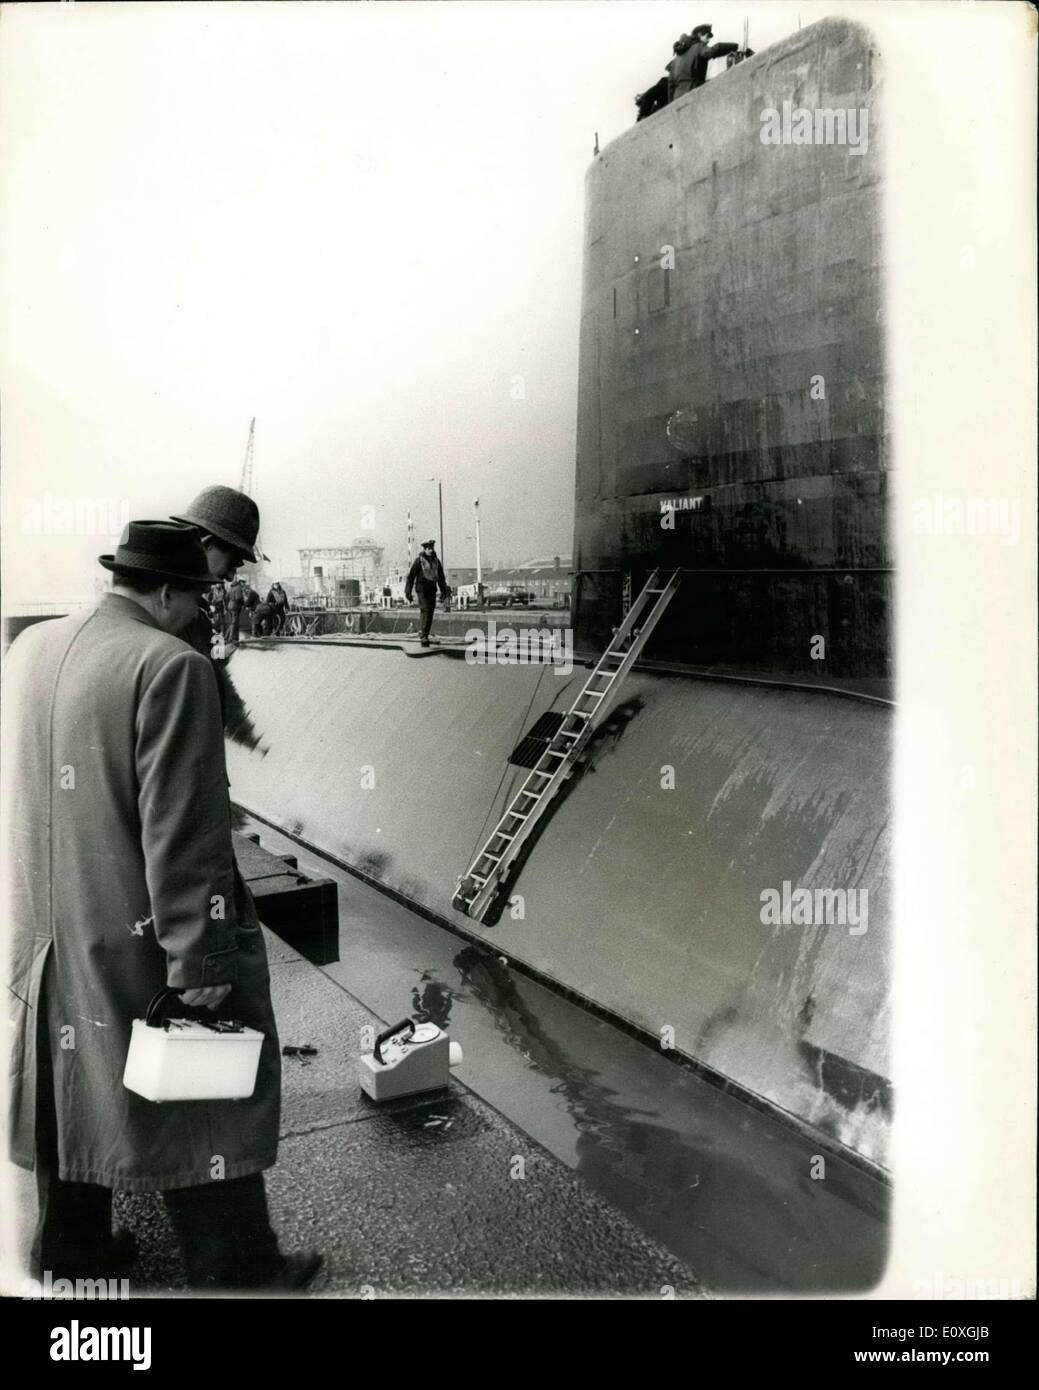 Dec. 12, 1966 - Docking of H.M.S. Valiant at Chatham Chatham dockyard, which is being adapted as refitting and refueling base for nuclear powered submarines, had it first visit from a nuclear submarine, today, when H.M.S. Valiant arrived for routine maintenance and Christmas leave. Keystone Photo Shows: Radiation experts seen with their geiger counters on the dockside carrying out inspection of the immediate area around H.M.S. Valiant, after her arrival at Chatham today. - Stock Image